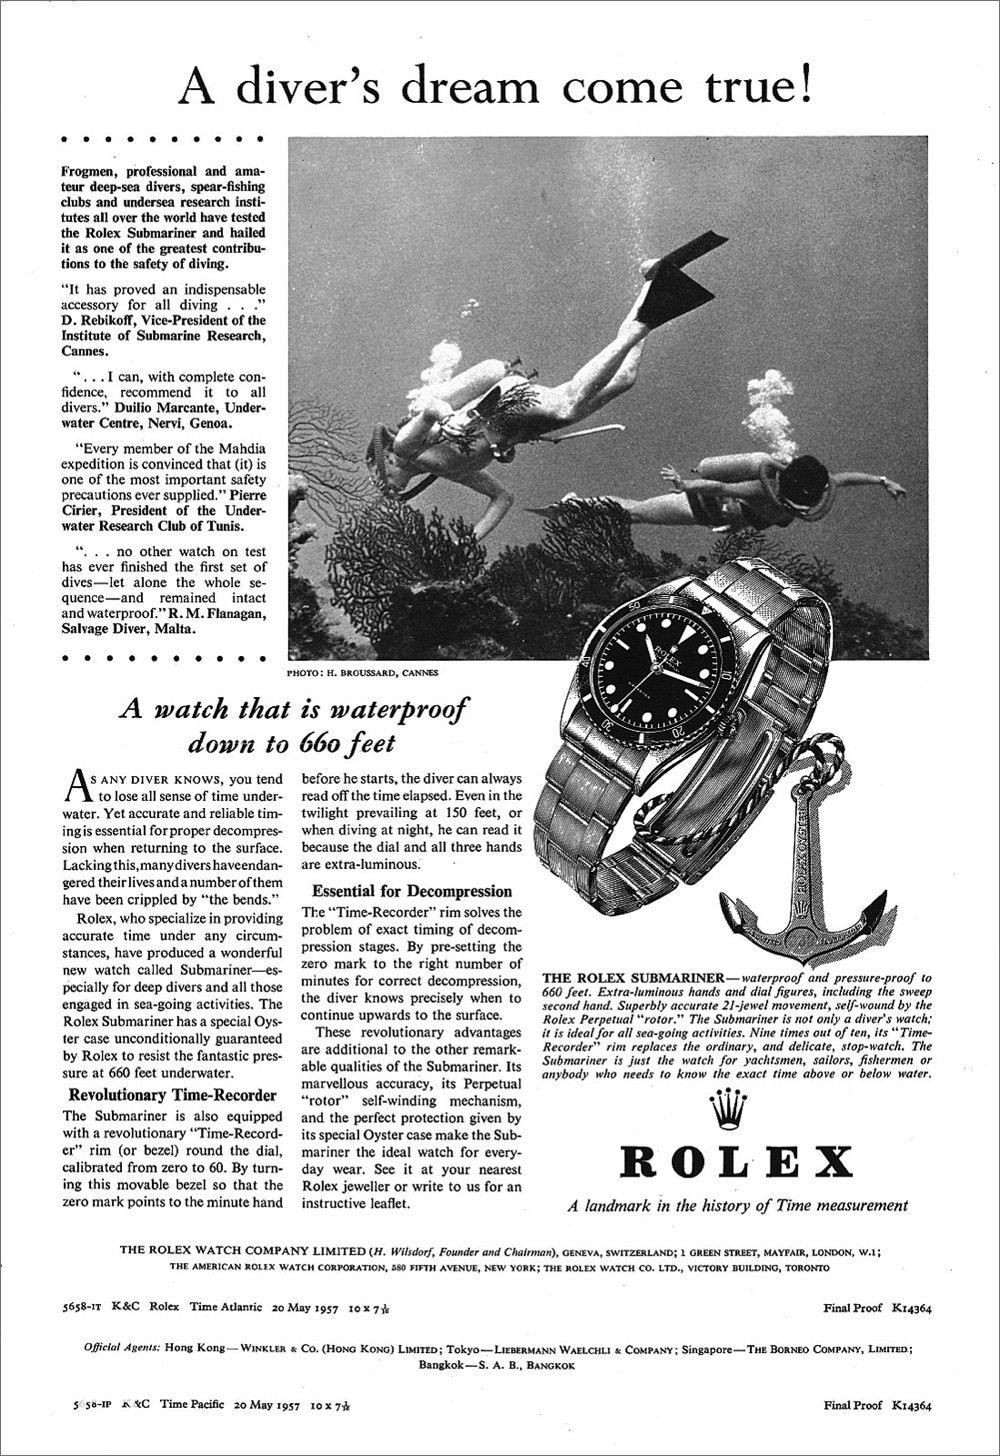 RPR_1957-Rolex-Submariner